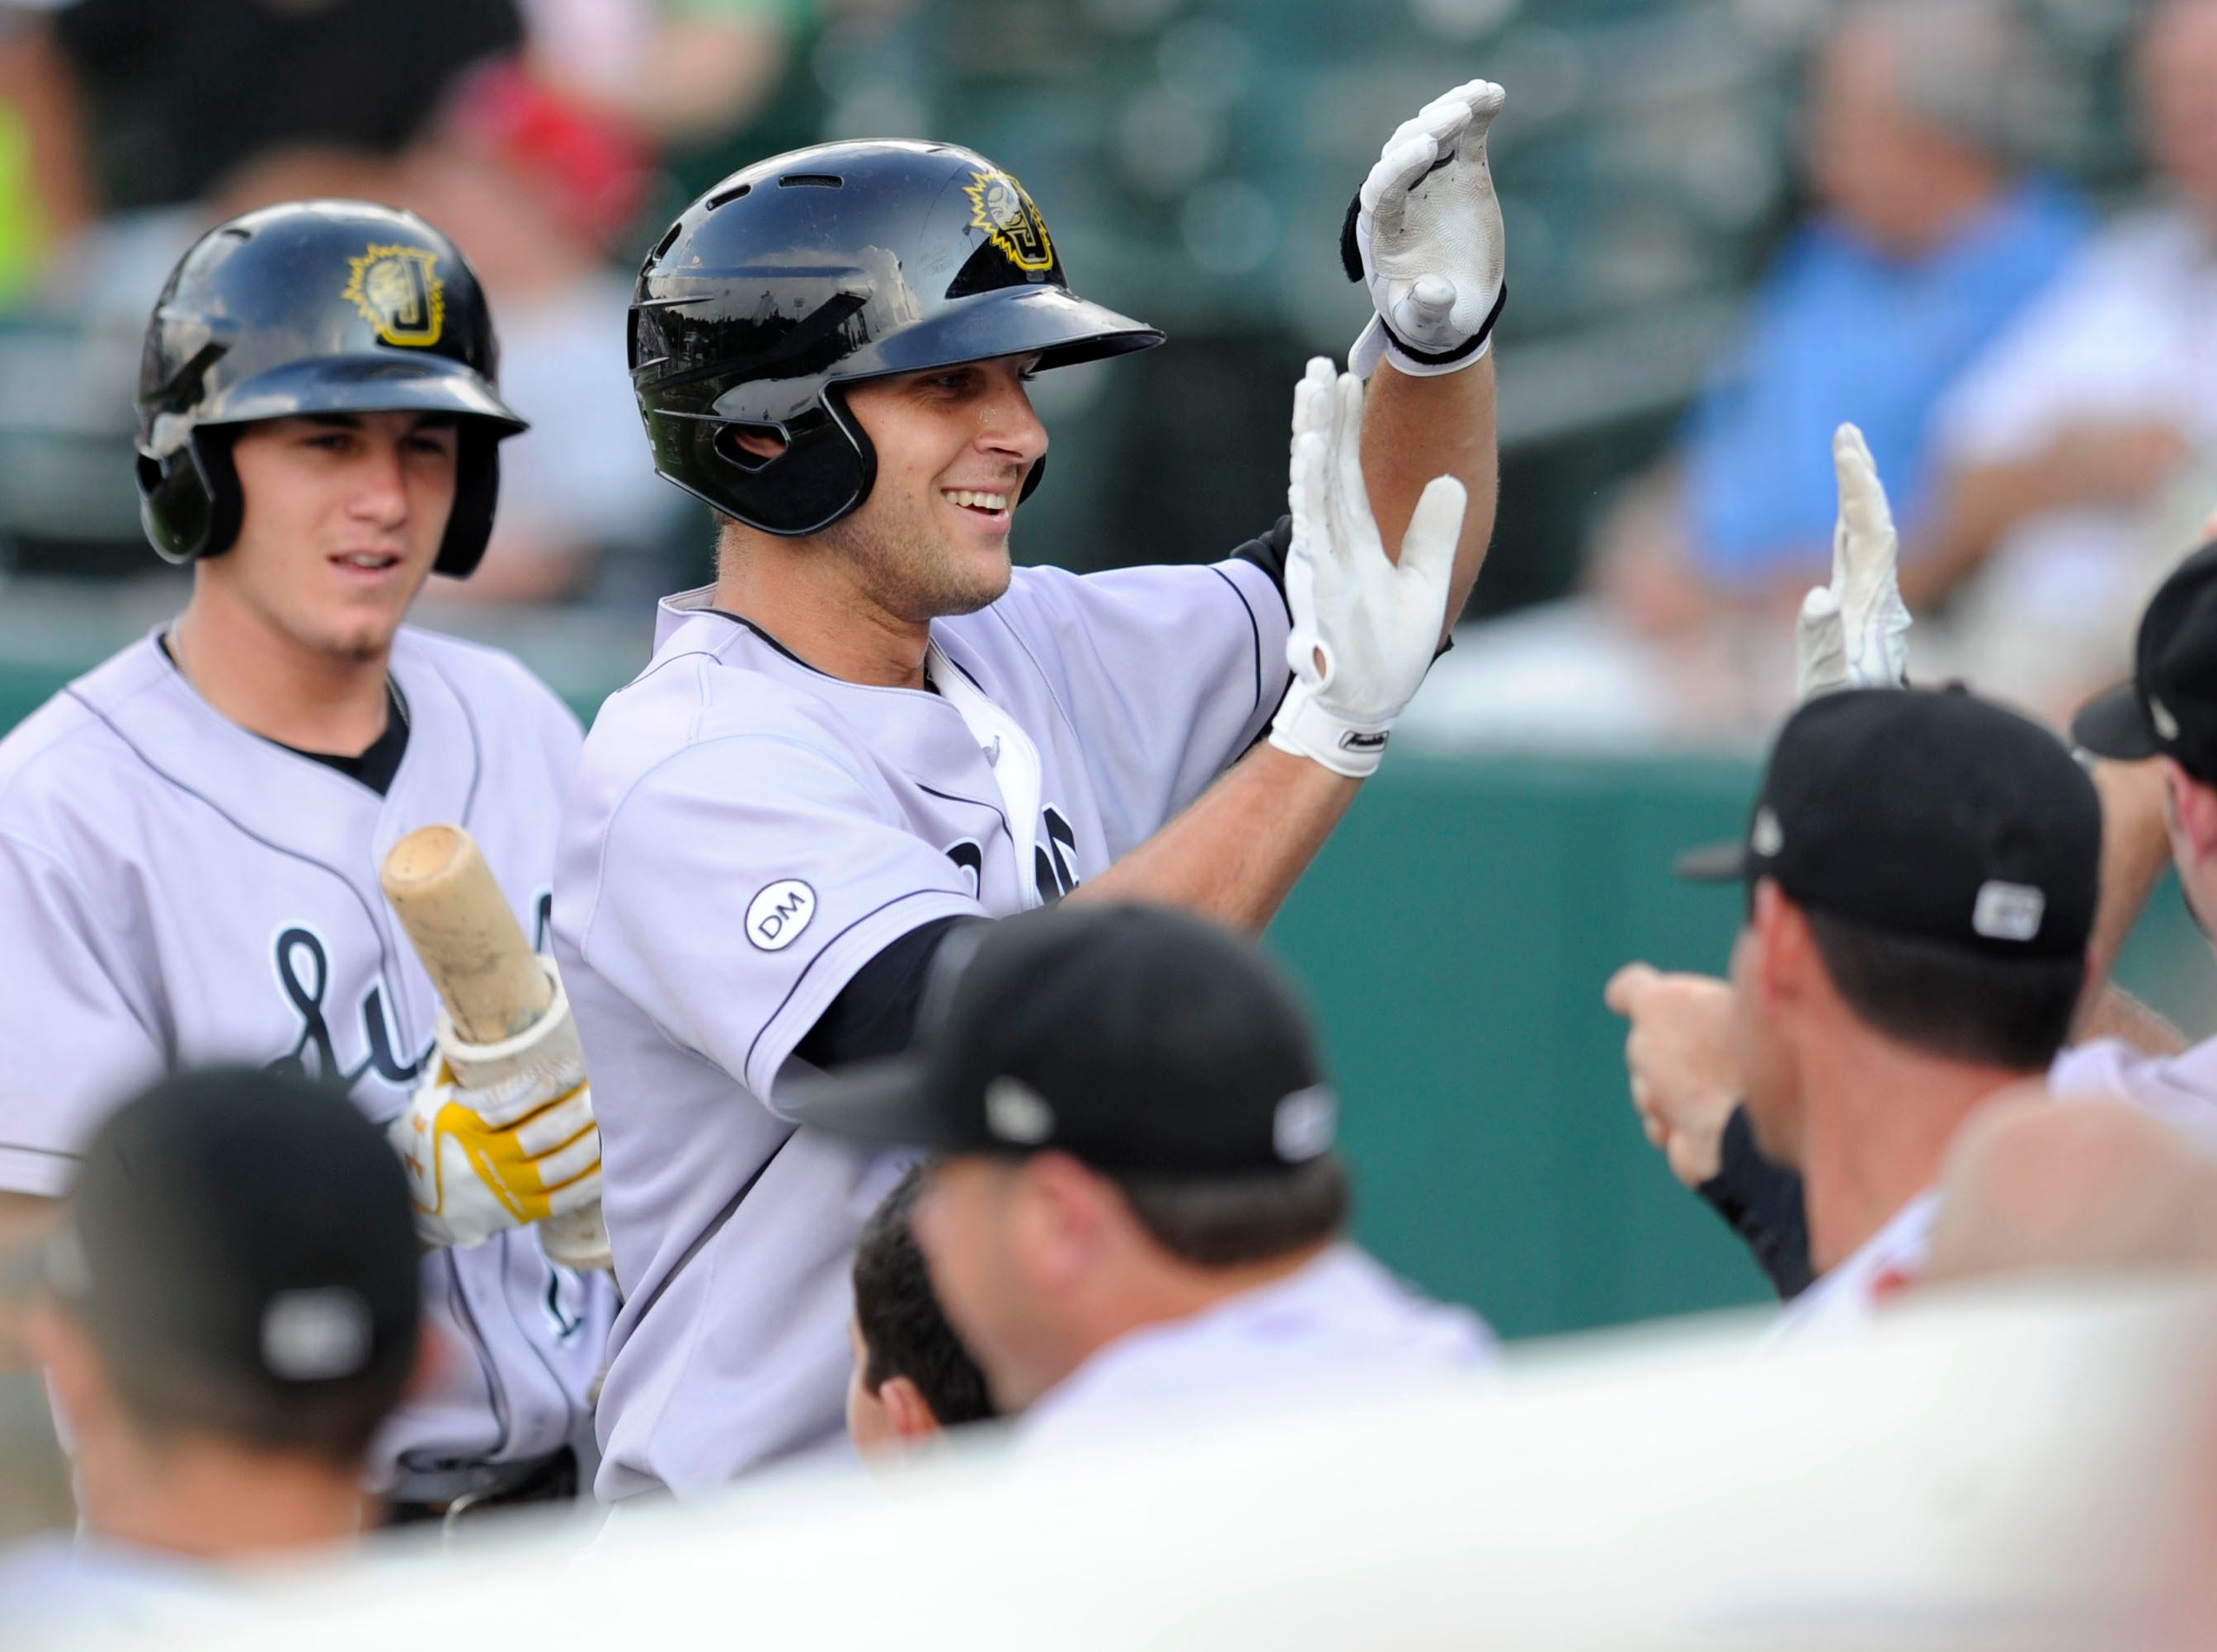 Jacksonville Suns Jake Marisnick celebrates a home run against the Tennessee Smokies at Smokies Park, Friday, July 19, 2013.